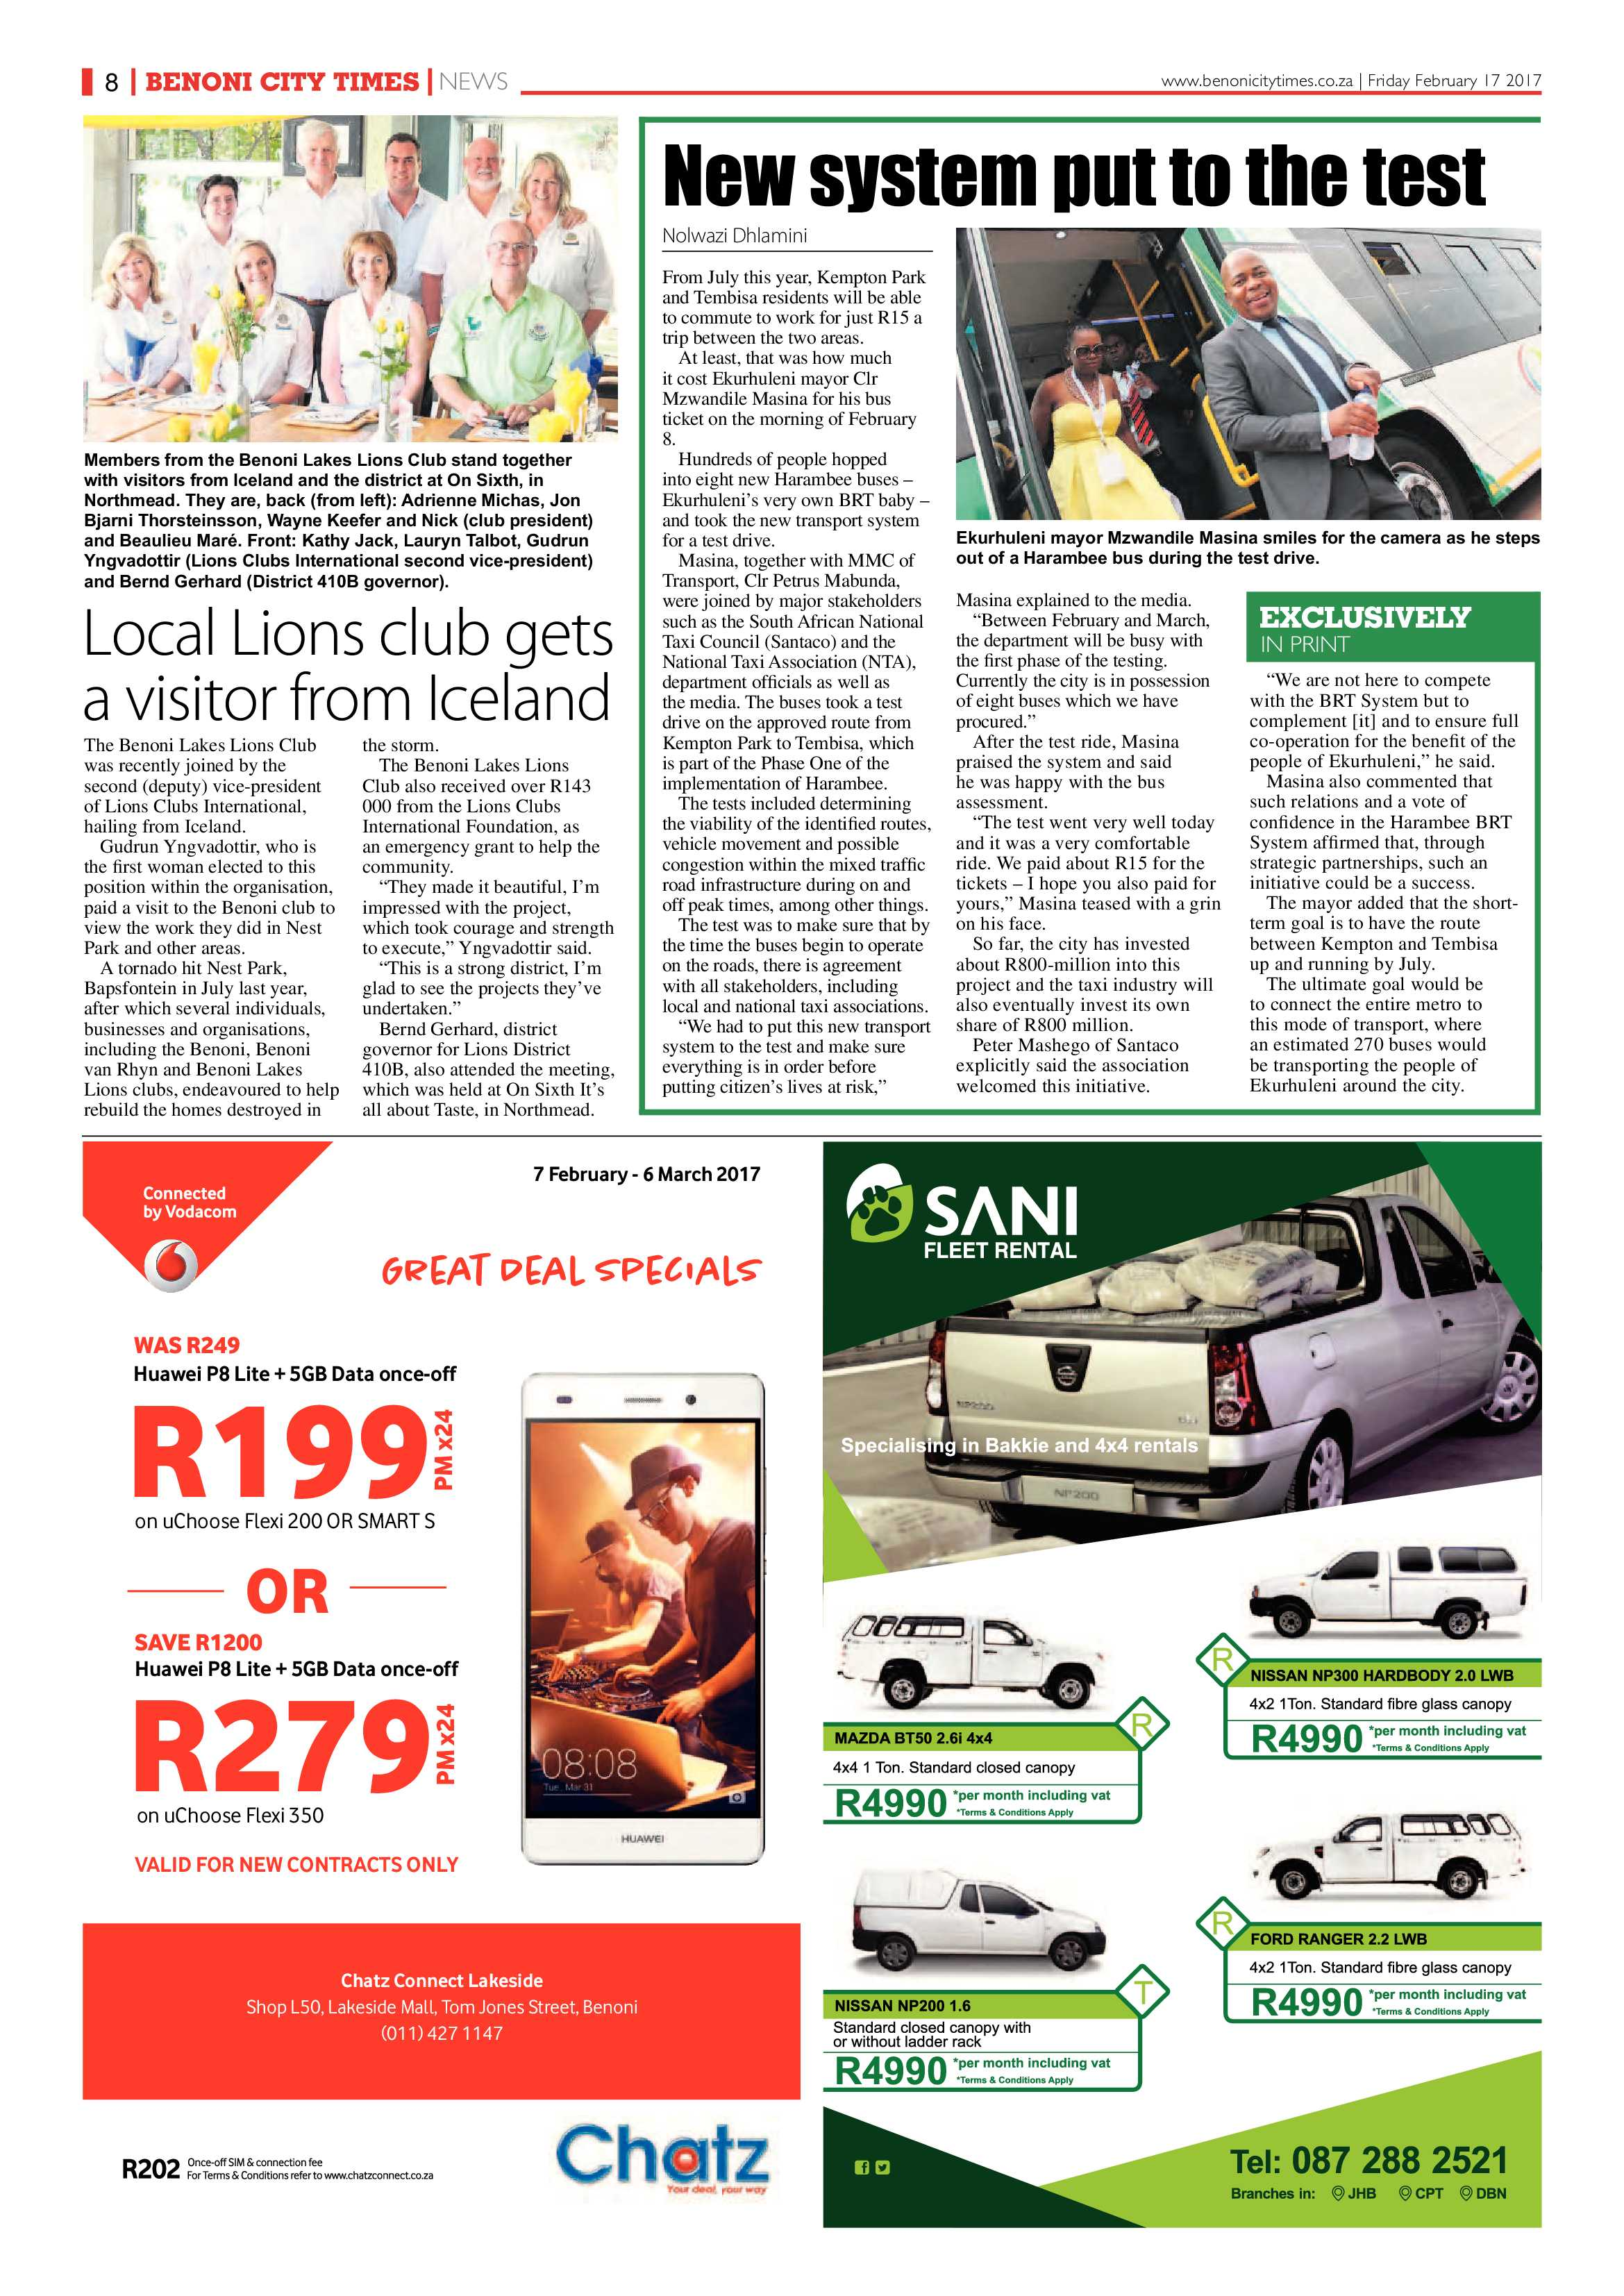 benoni-city-times-16-february-2017-epapers-page-8